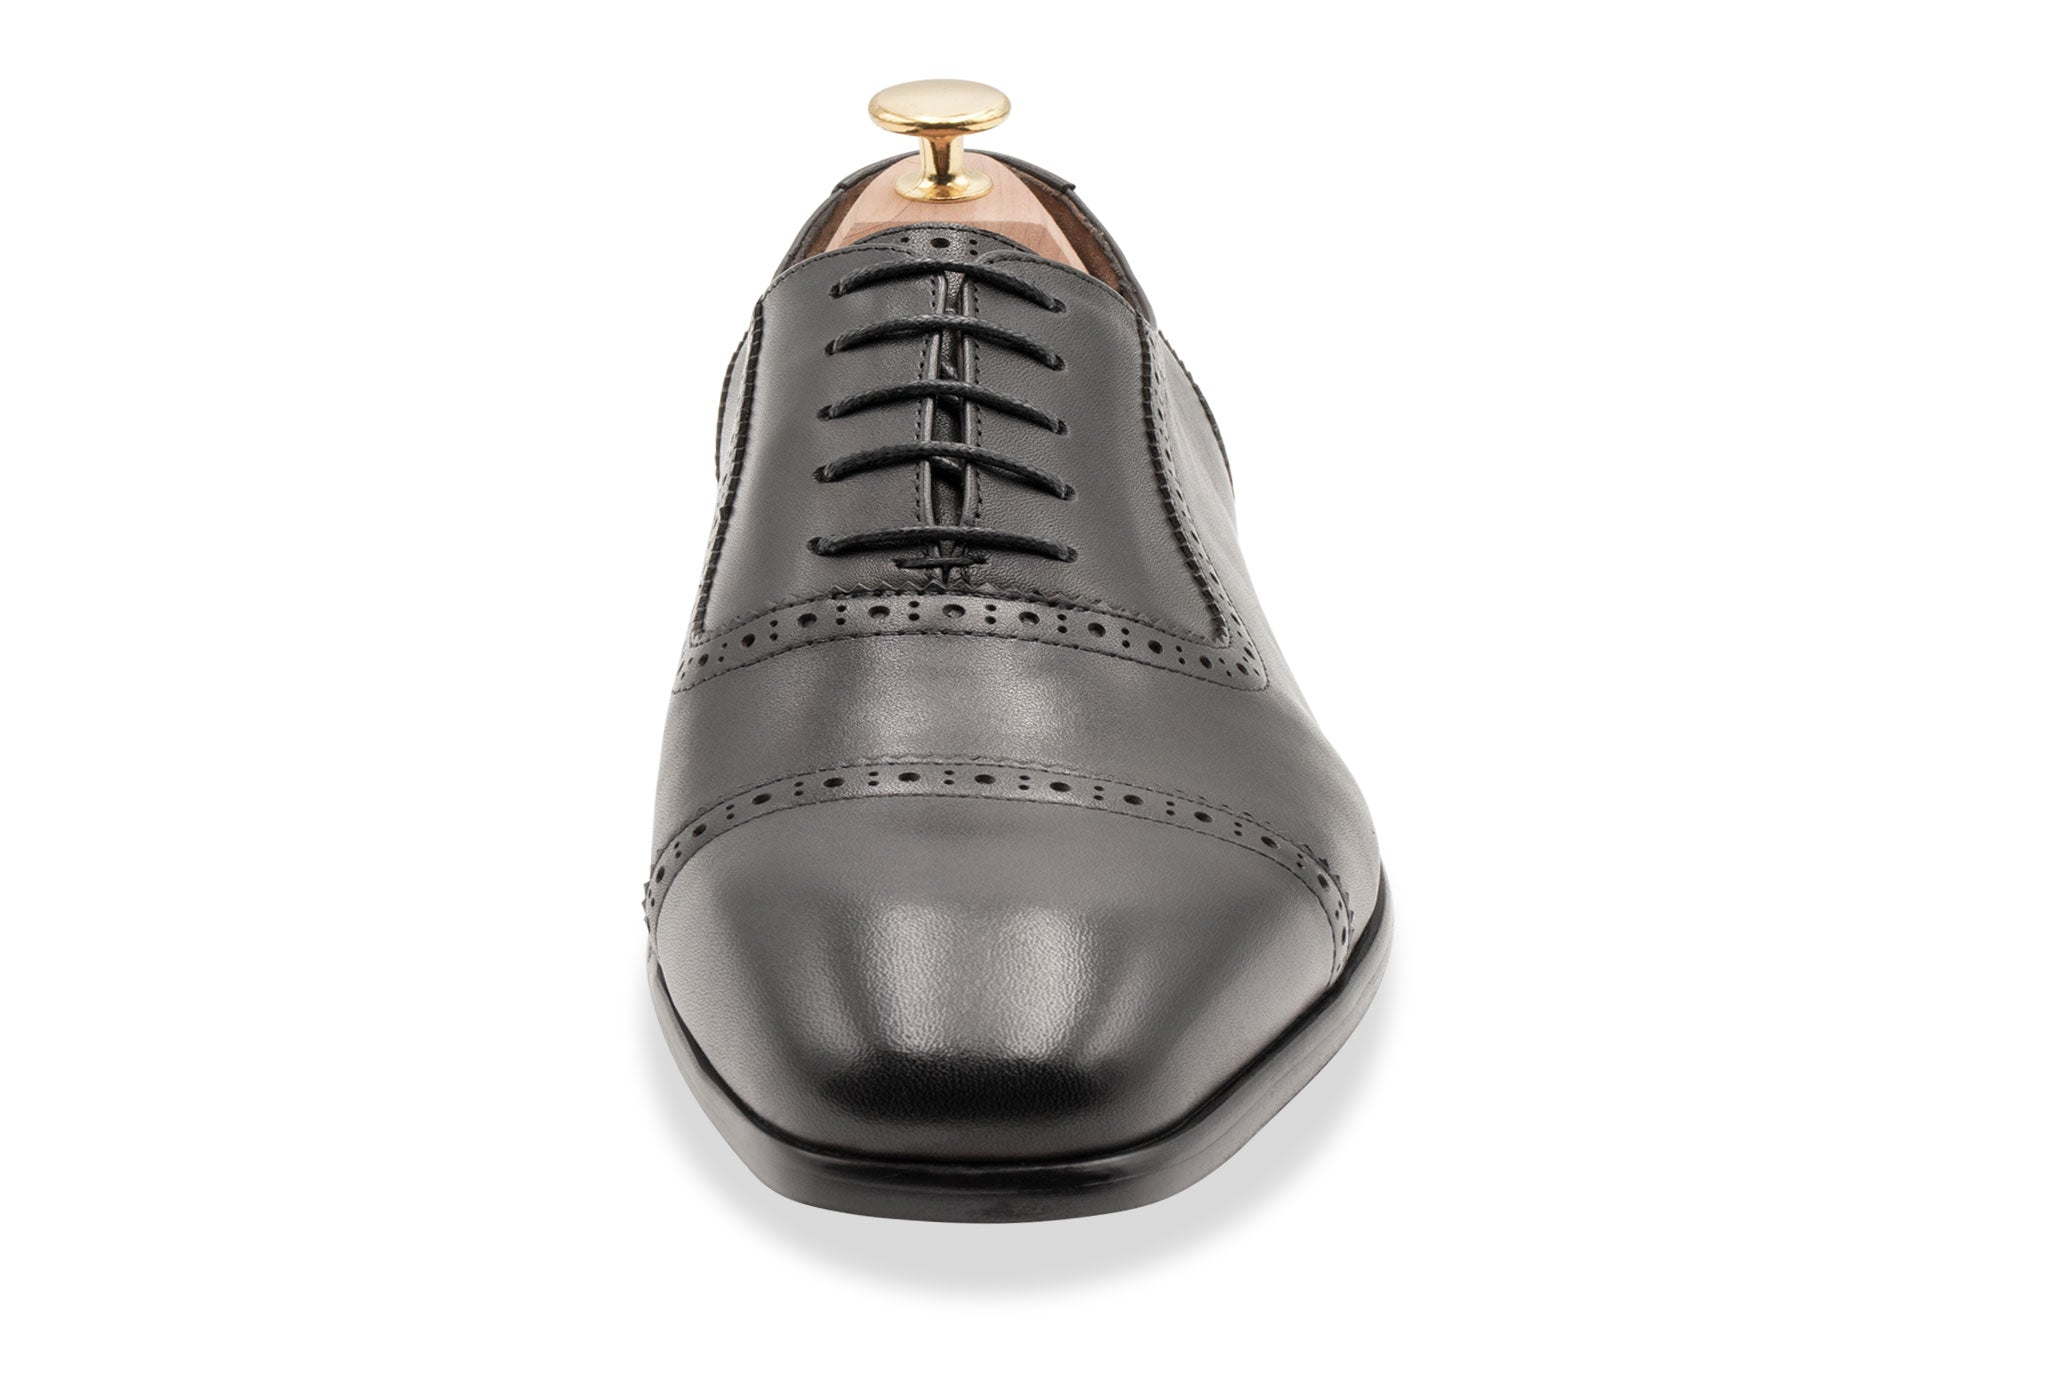 Tartagal Straight Cap Black Oxford